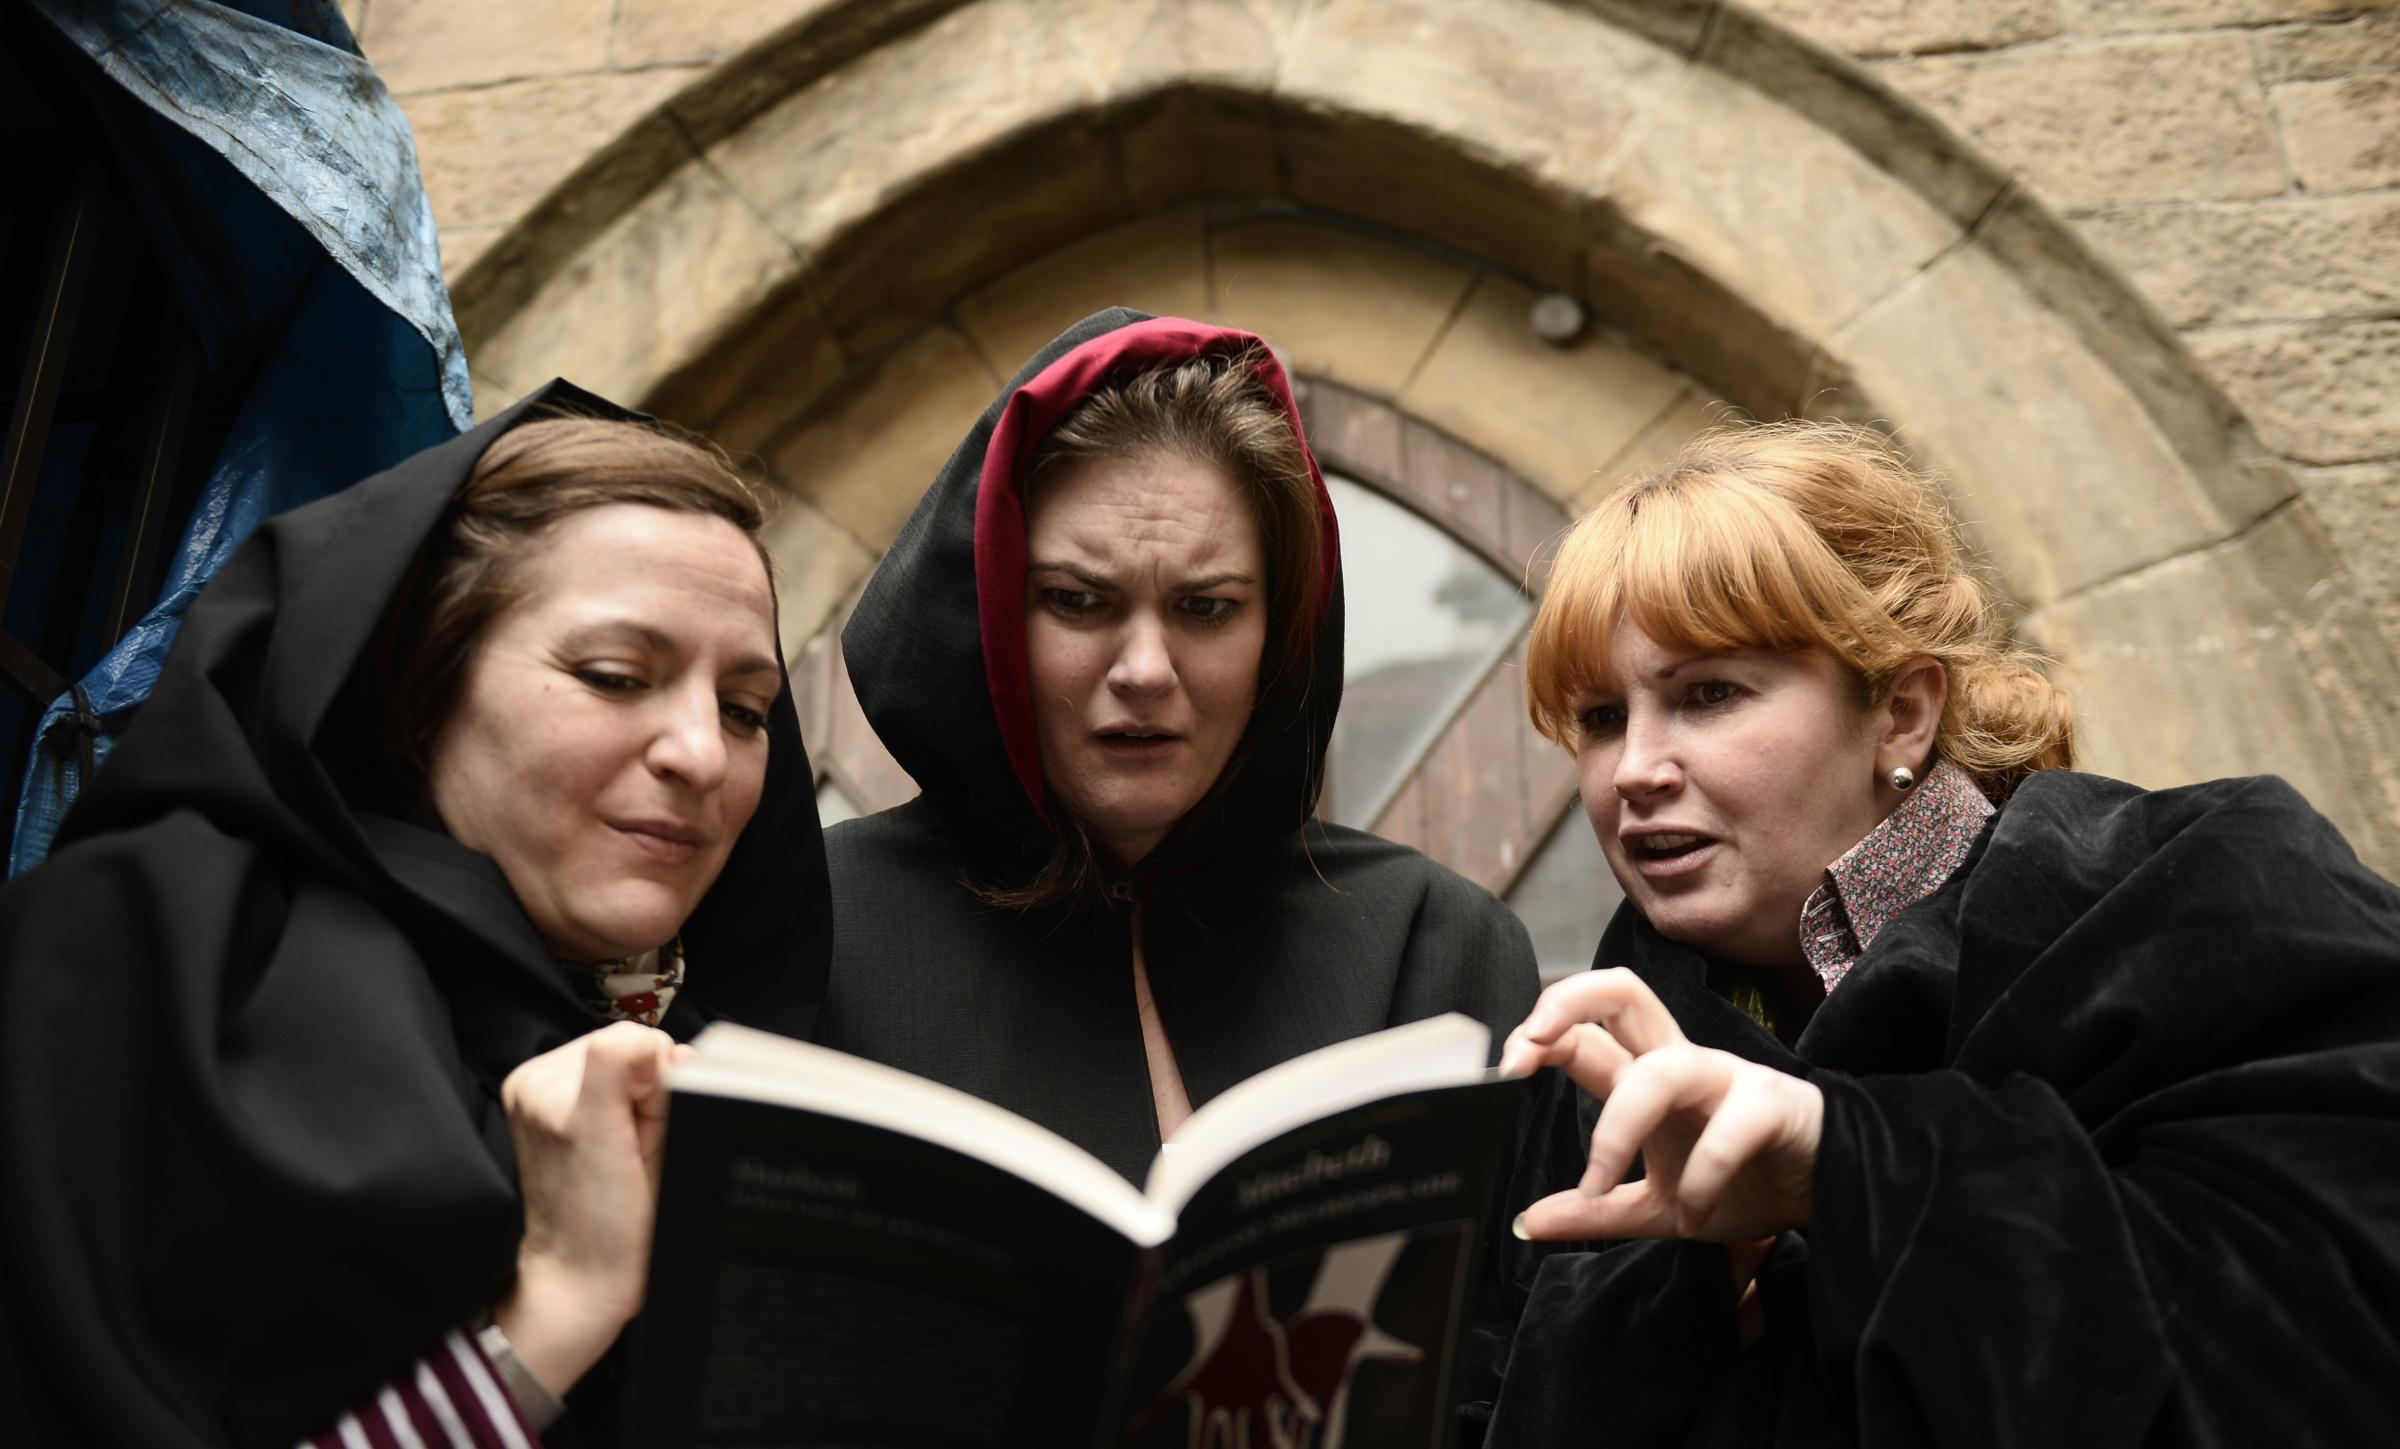 GLASGOW, SCOTLAND - SEPTEMBER 06: the cast of Oran Mor play The Witches of West Fife, featuring Kirstin McLean, Clare Waugh and Sally Reid pose for a photograph during rehearsals on September 06, 2017 in Glasgow, Scotland. (Photo by Jamie Simpson/Herald &